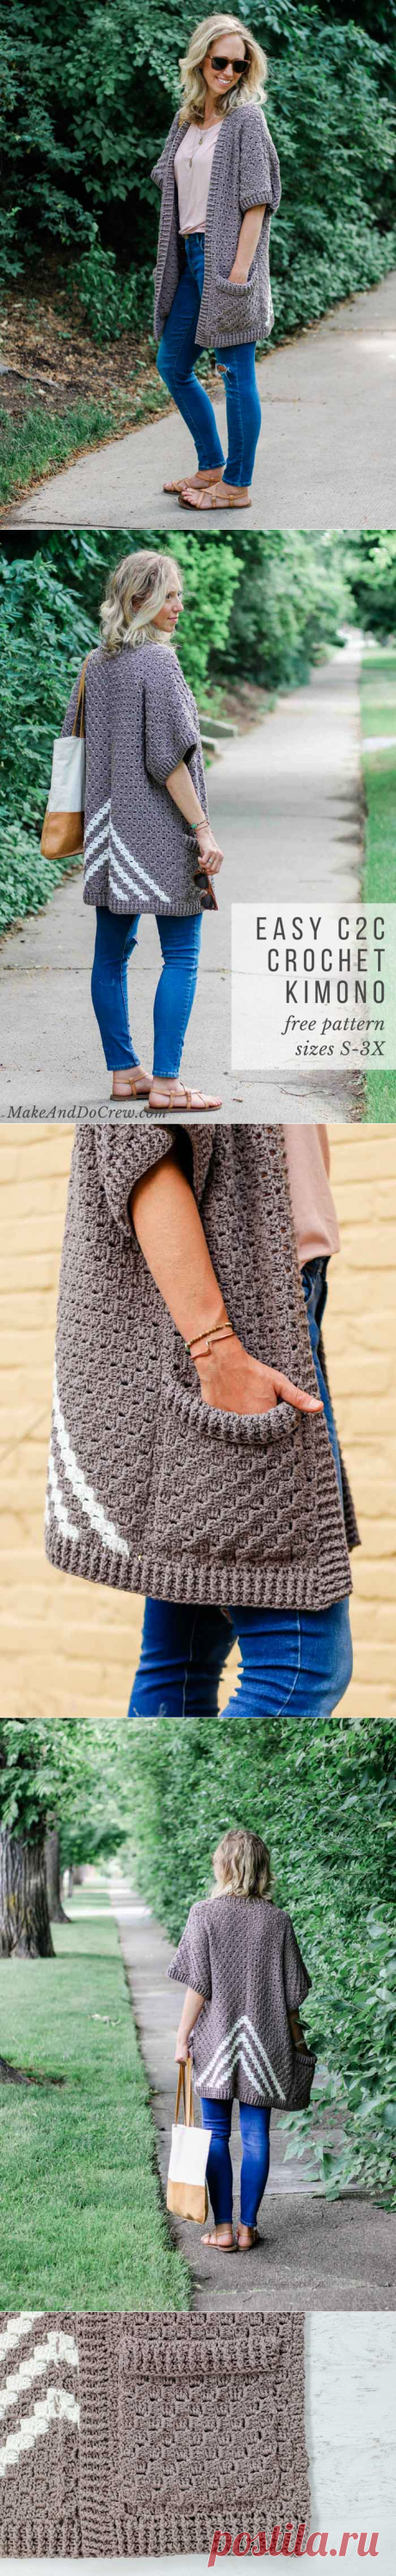 Easy C2C Crochet Kimono Sweater Made from Rectangles - Free Pattern!